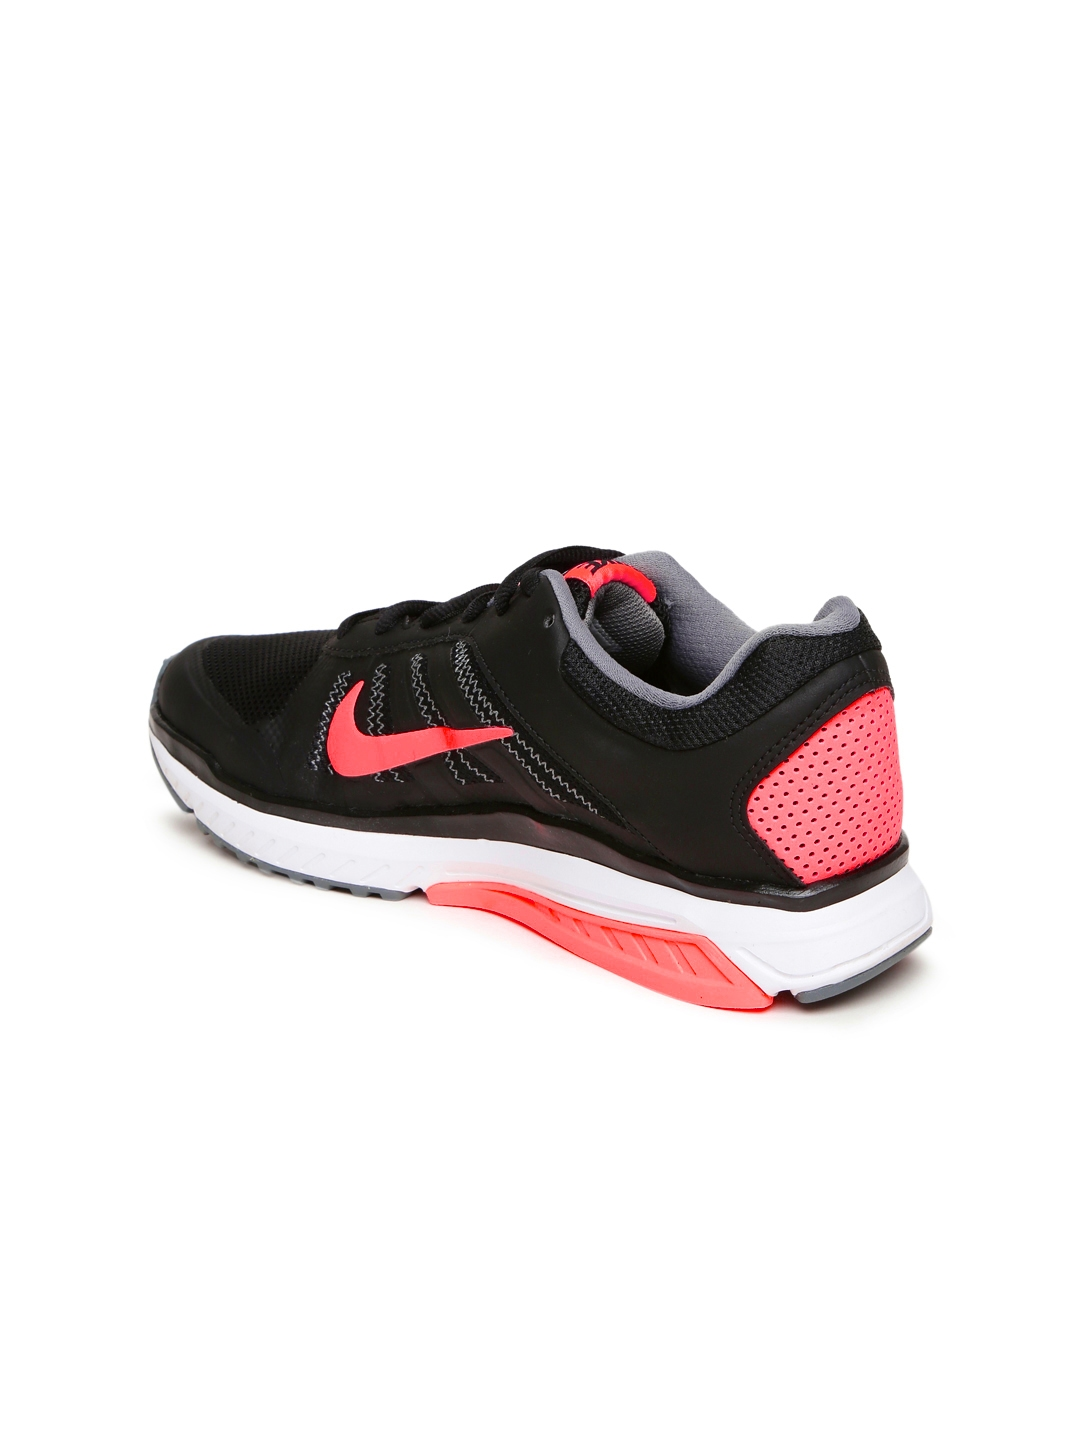 Buy Nike Women Black Dart 12 Running Shoes - Sports Shoes for Women ... b9cfb38ab